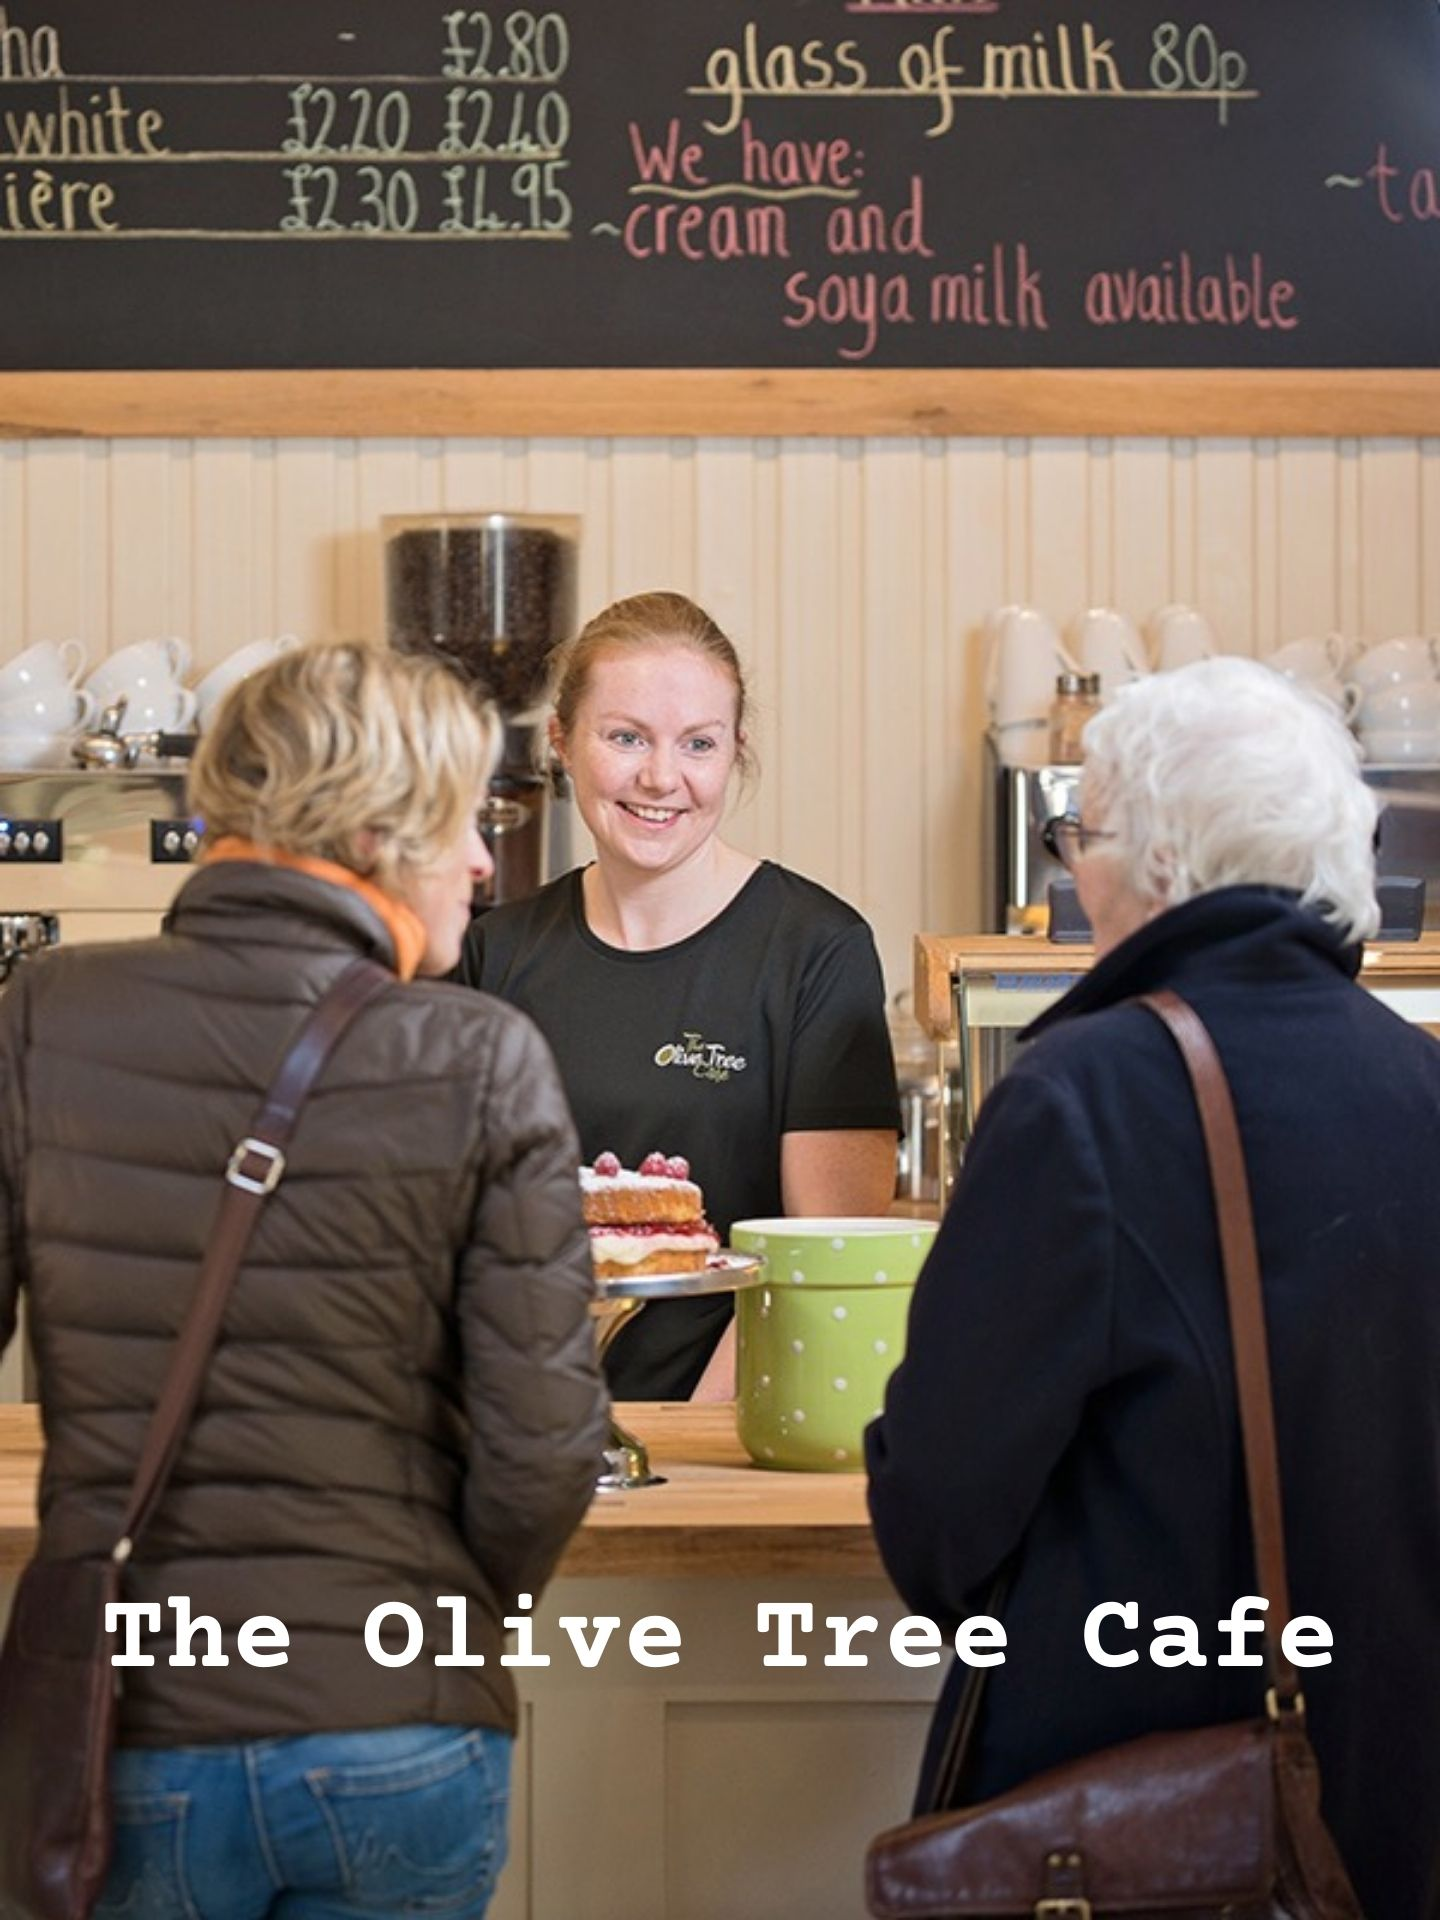 The Olive Tree Cafe at Logie Steading